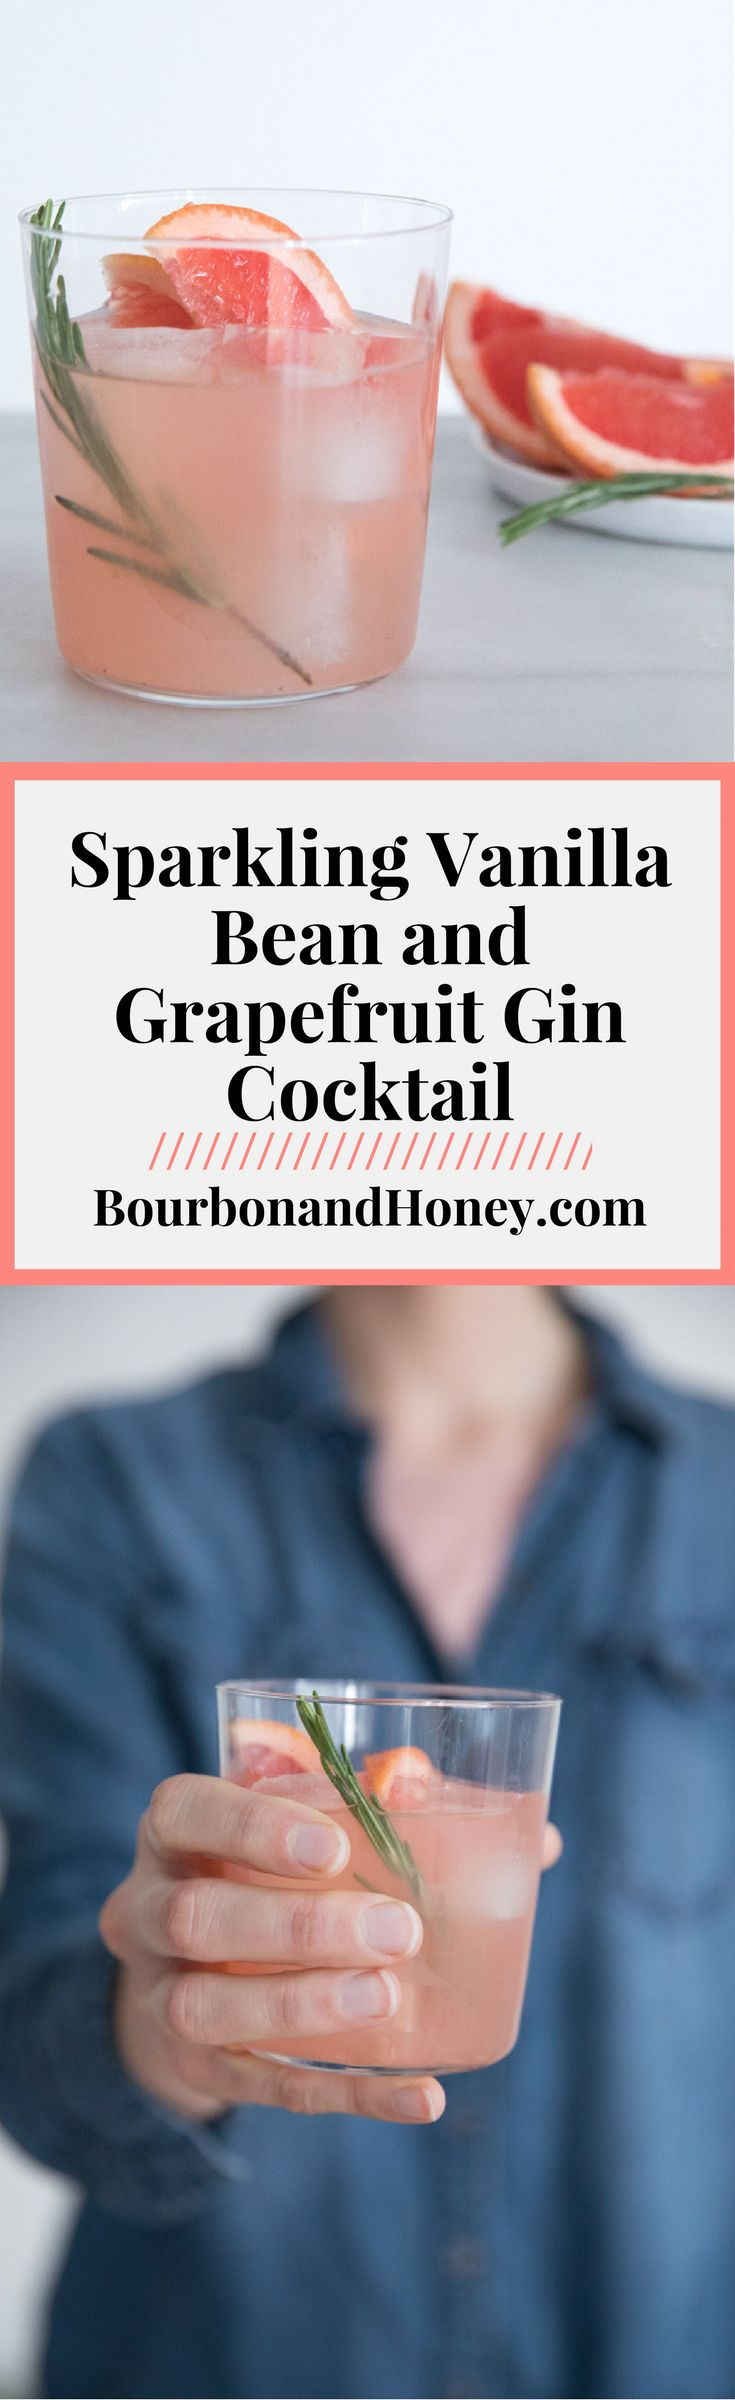 Sparkling Vanilla and Grapefruit Gin Cocktail {Video} | BourbonandHoney.com -- Light, fresh and bubbly, this Sparkling Vanilla and Grapefruit Gin Cocktail recipe is the perfect drink for a brunch or sunny afternoon!